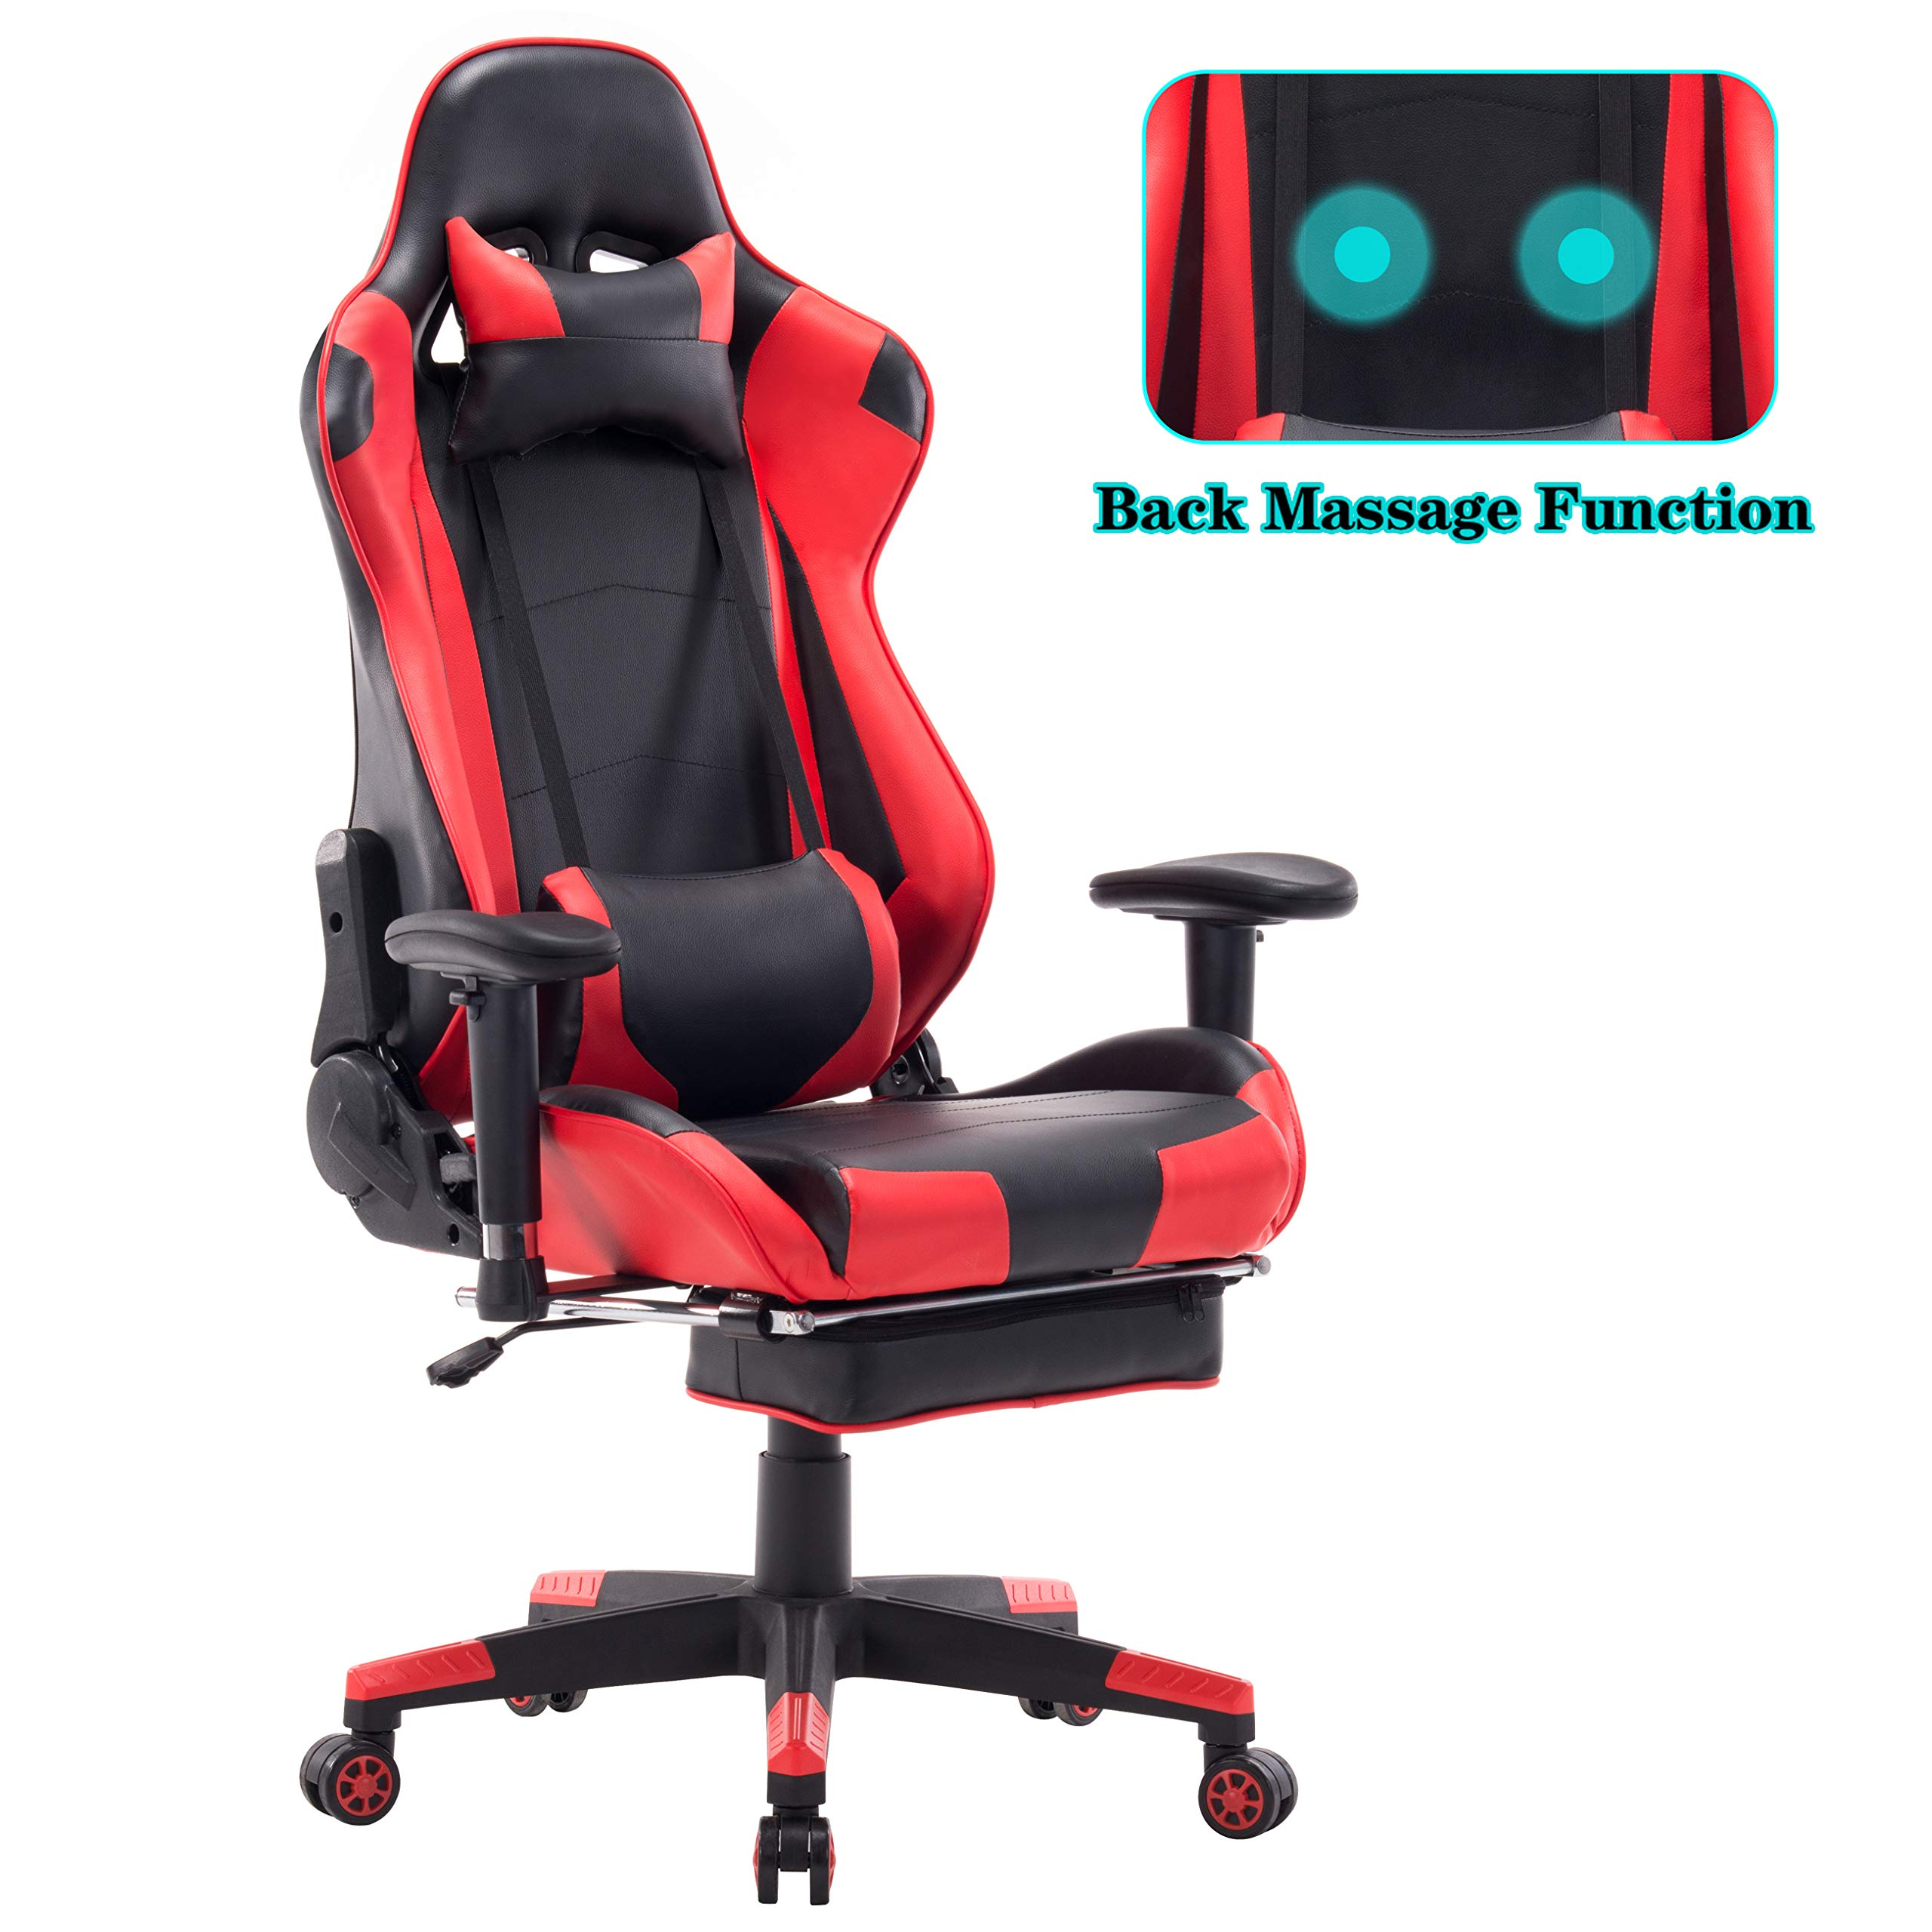 HEALGEN Back Massage Gaming Chair with Footrest,PC Computer Video Game Racing Gamer Chair High Back Reclining Executive Ergonomic Desk Office Chair with Headrest Lumbar Support Cushion GM002 (Red) by HEALGEN